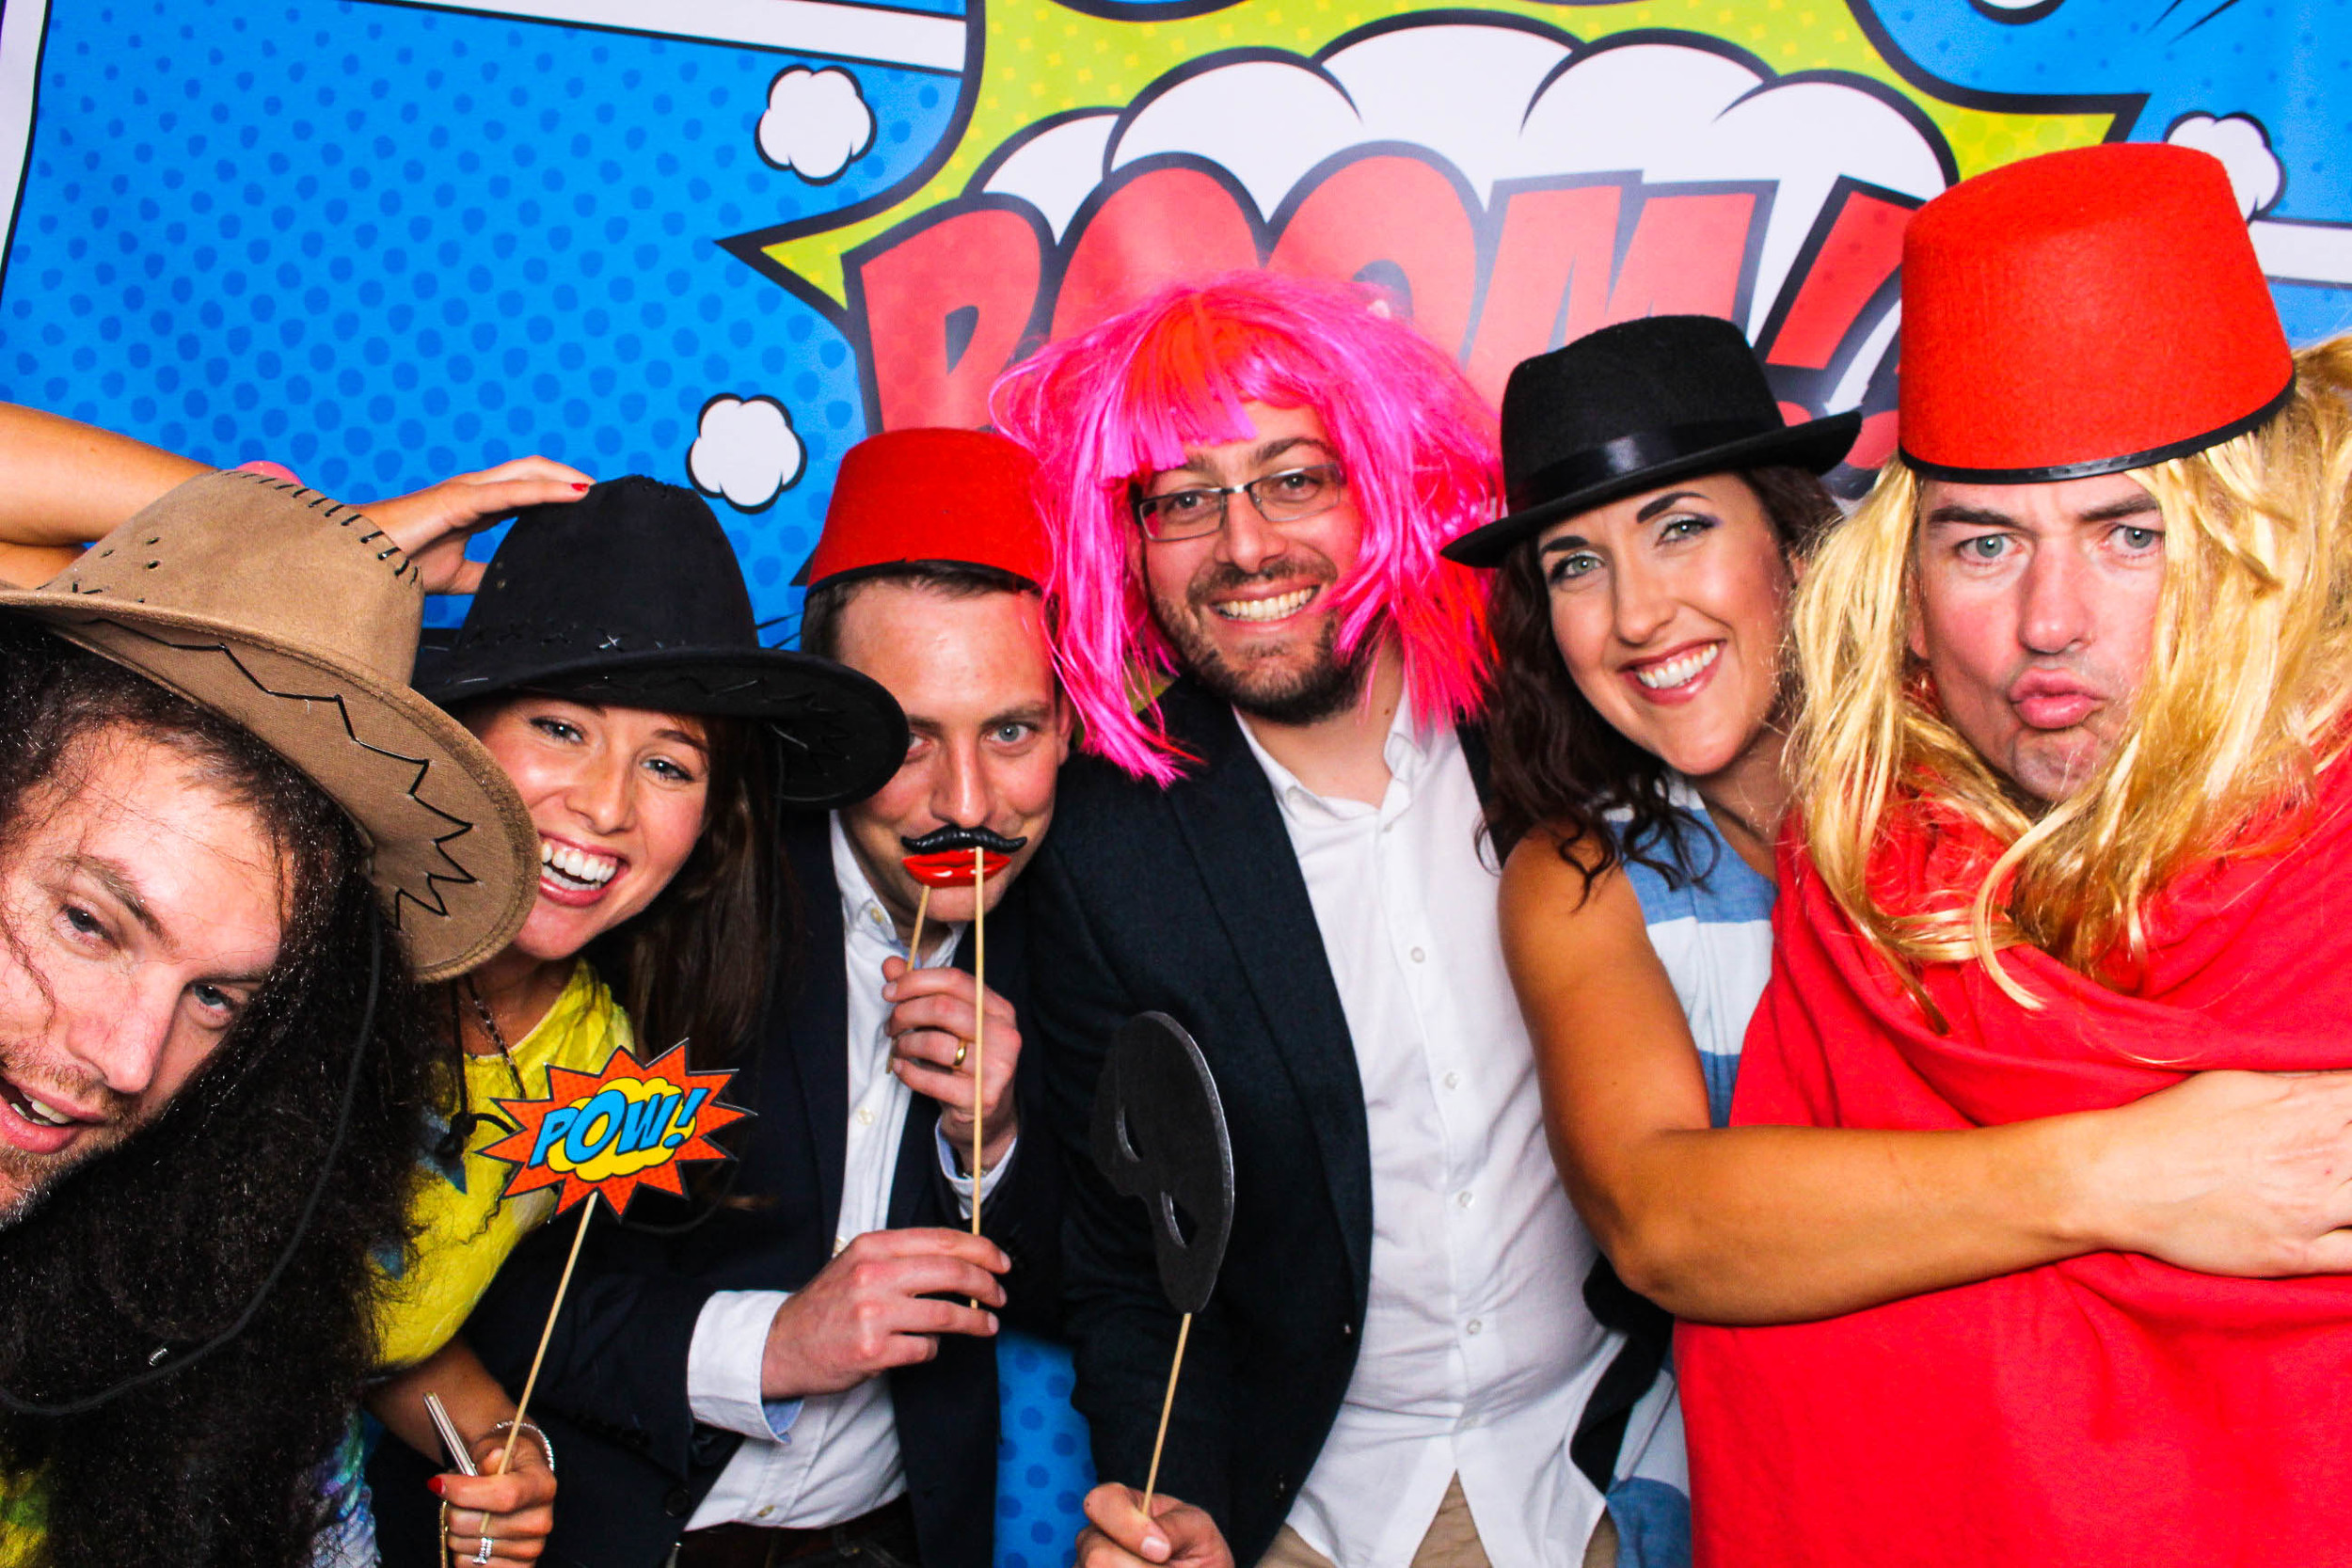 Fotoauto Photo Booth Hire - Shop Direct-251.jpg